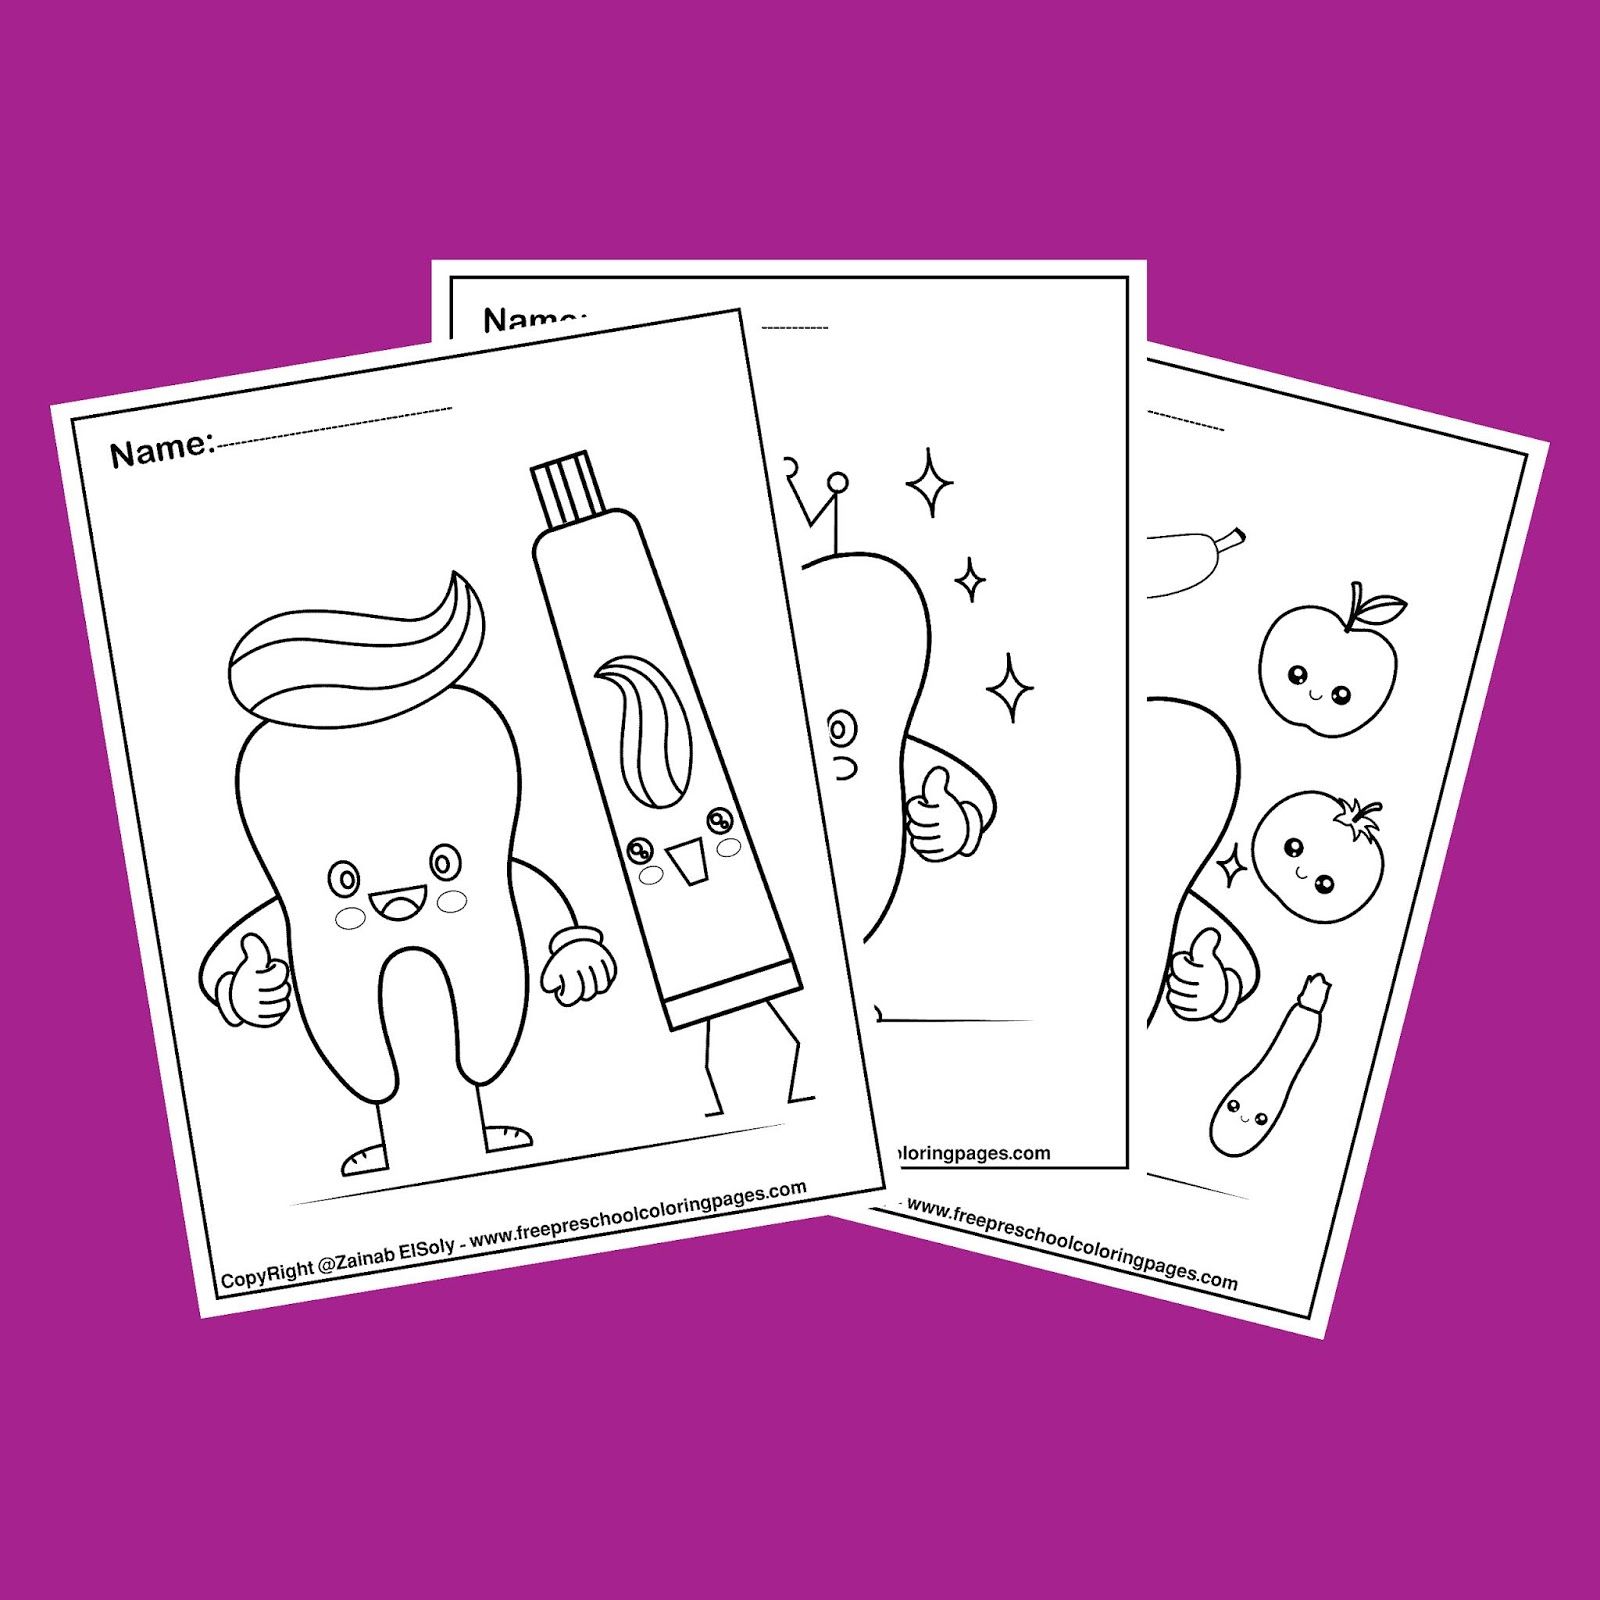 Dental Coloring Pages For Kids Cute Tooth Kawaii Design